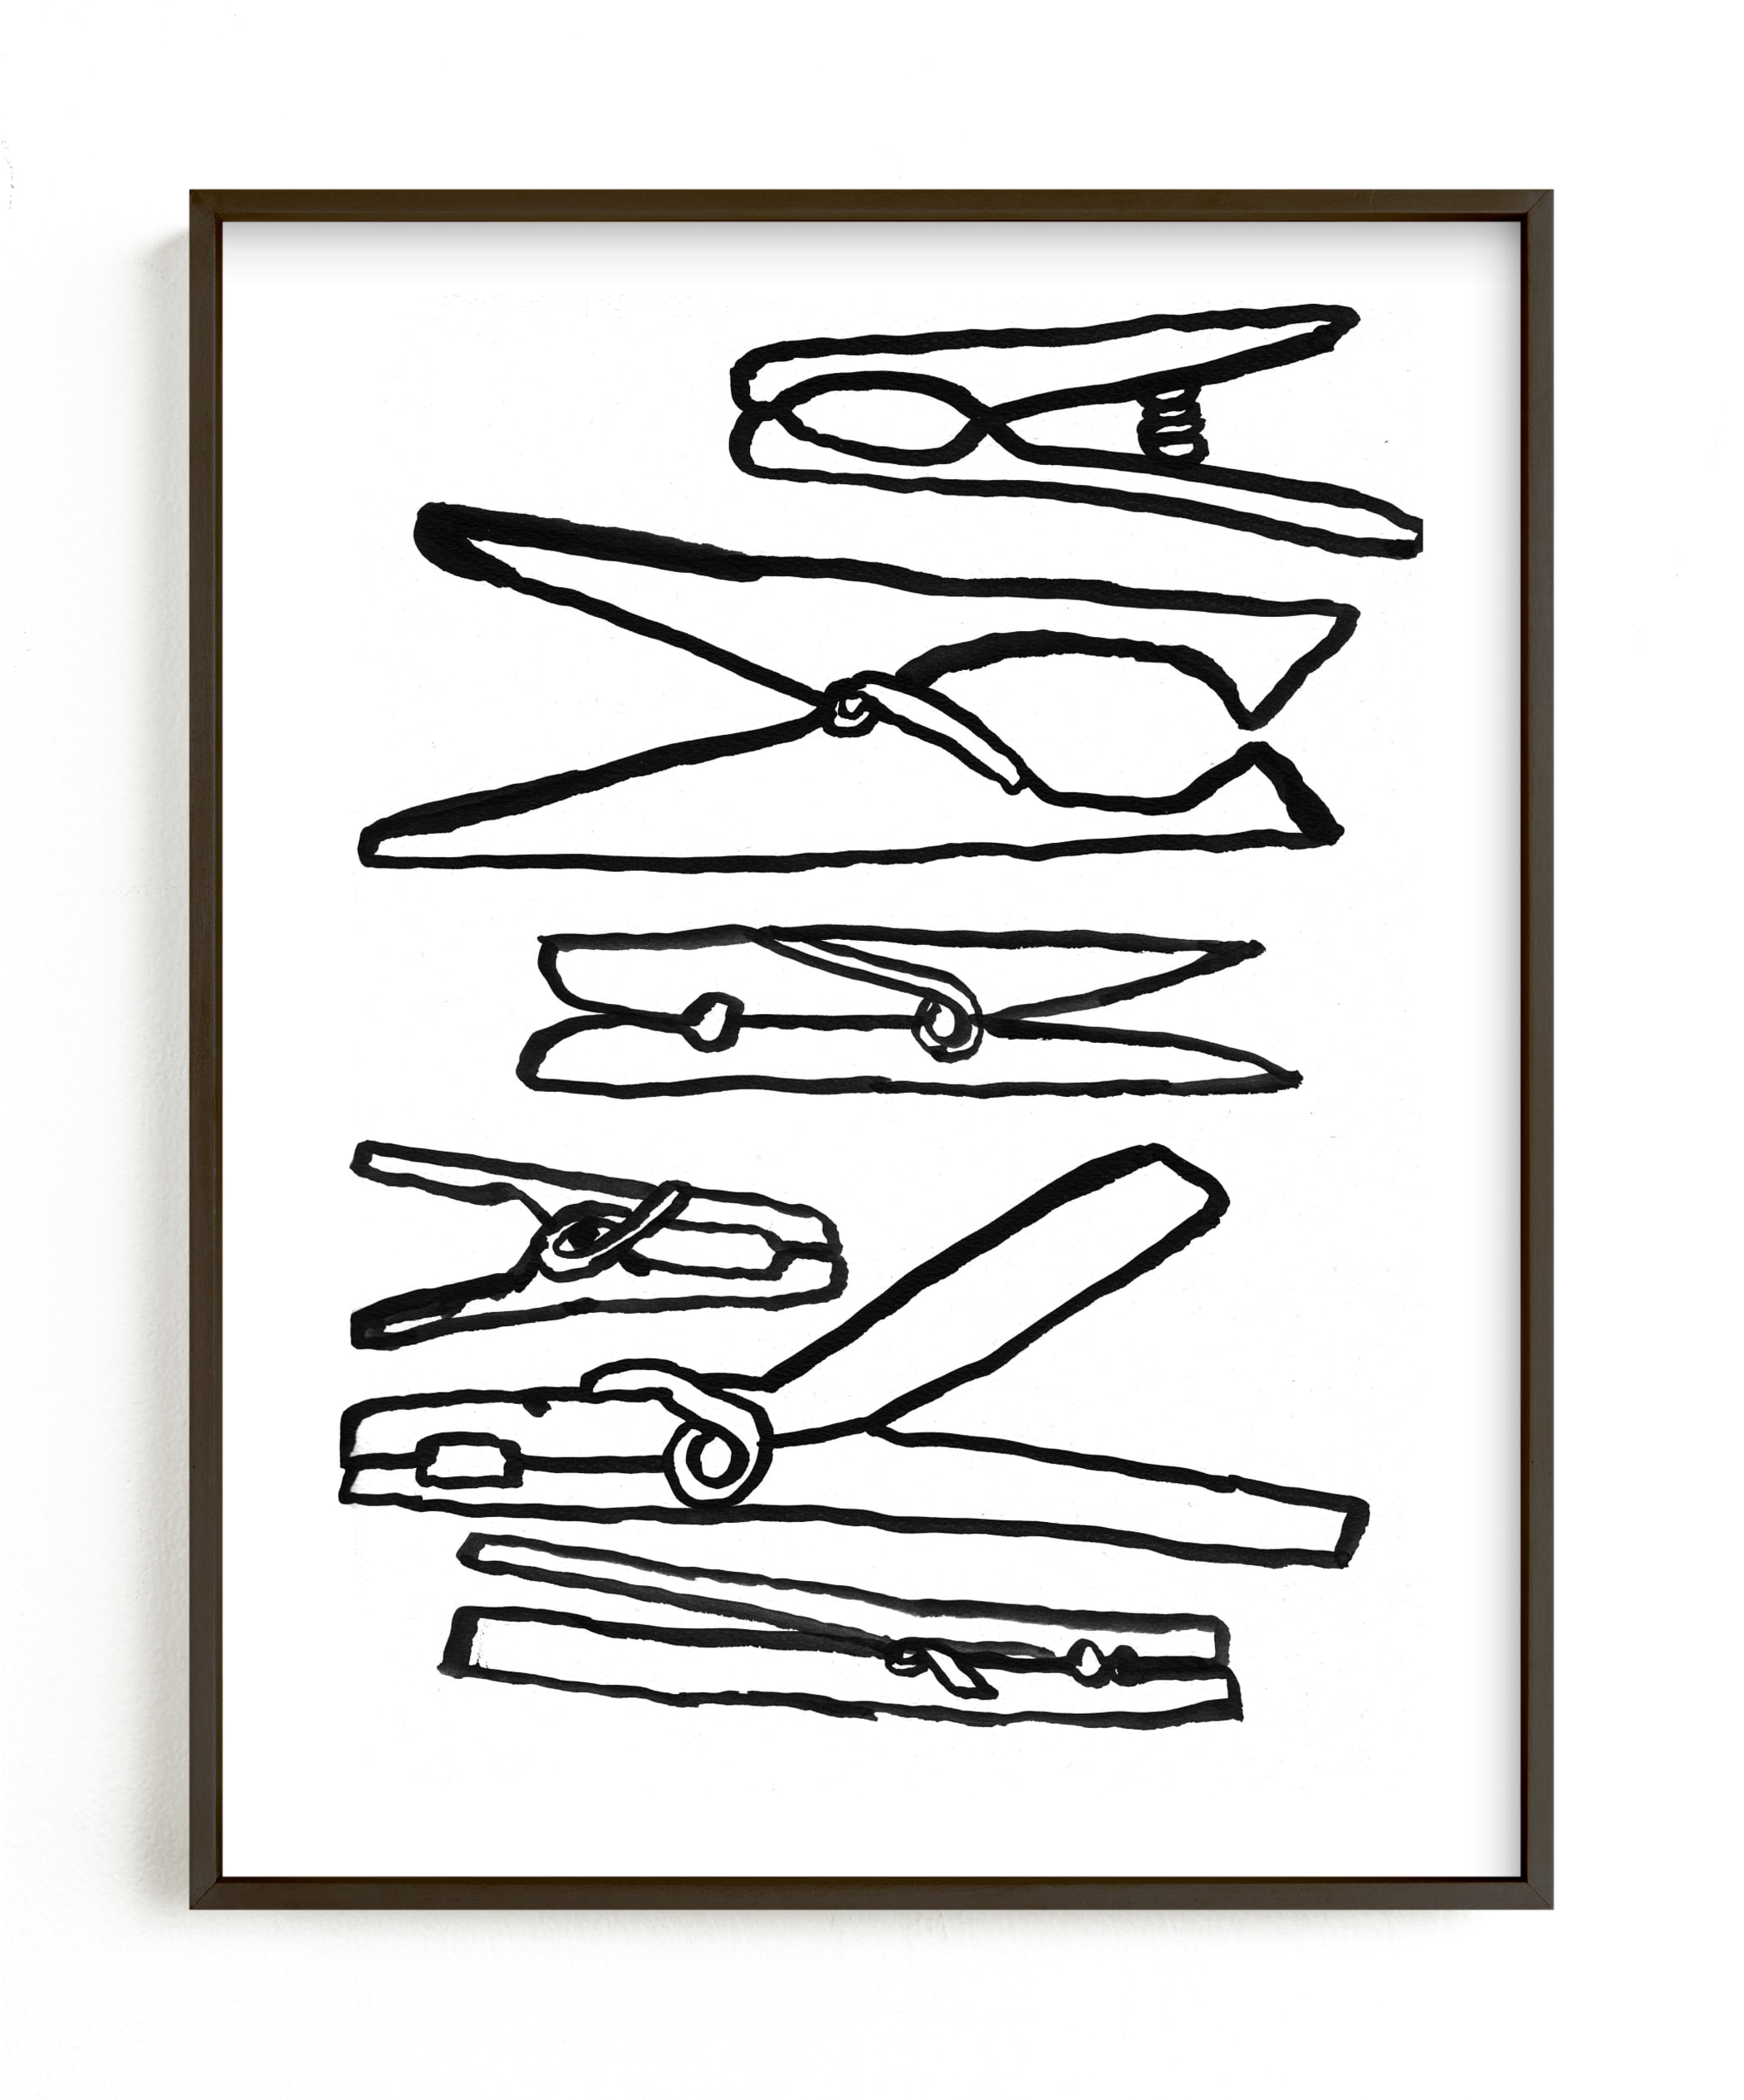 """""""Clothespins 2"""" - Limited Edition Art Print by Elliot Stokes in beautiful frame options and a variety of sizes."""